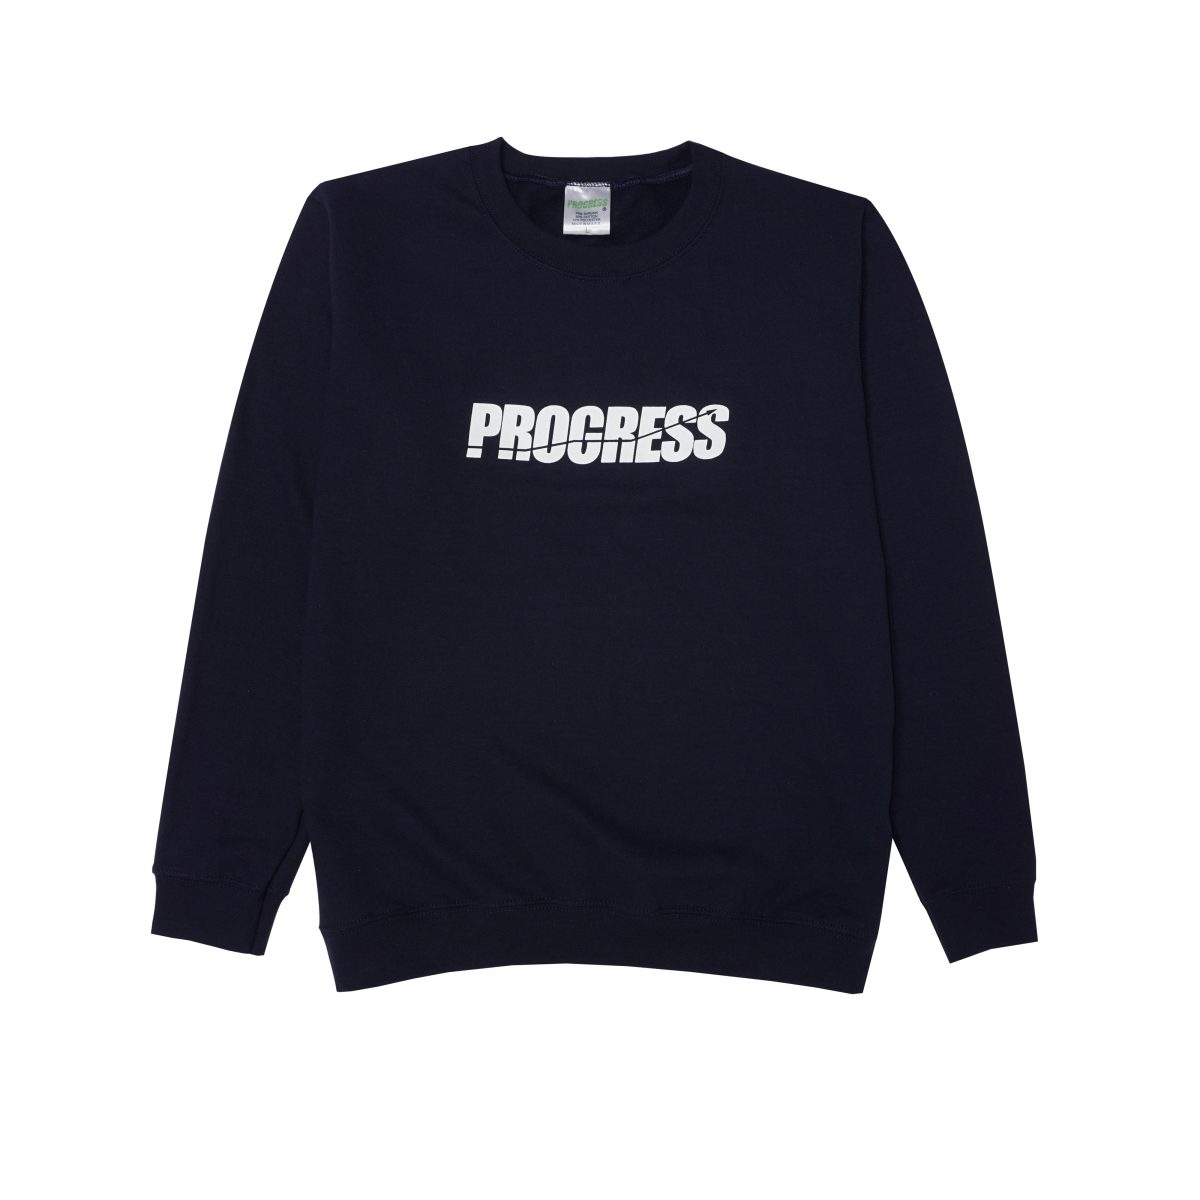 LOGO SWEATS (NAVY BLUE)